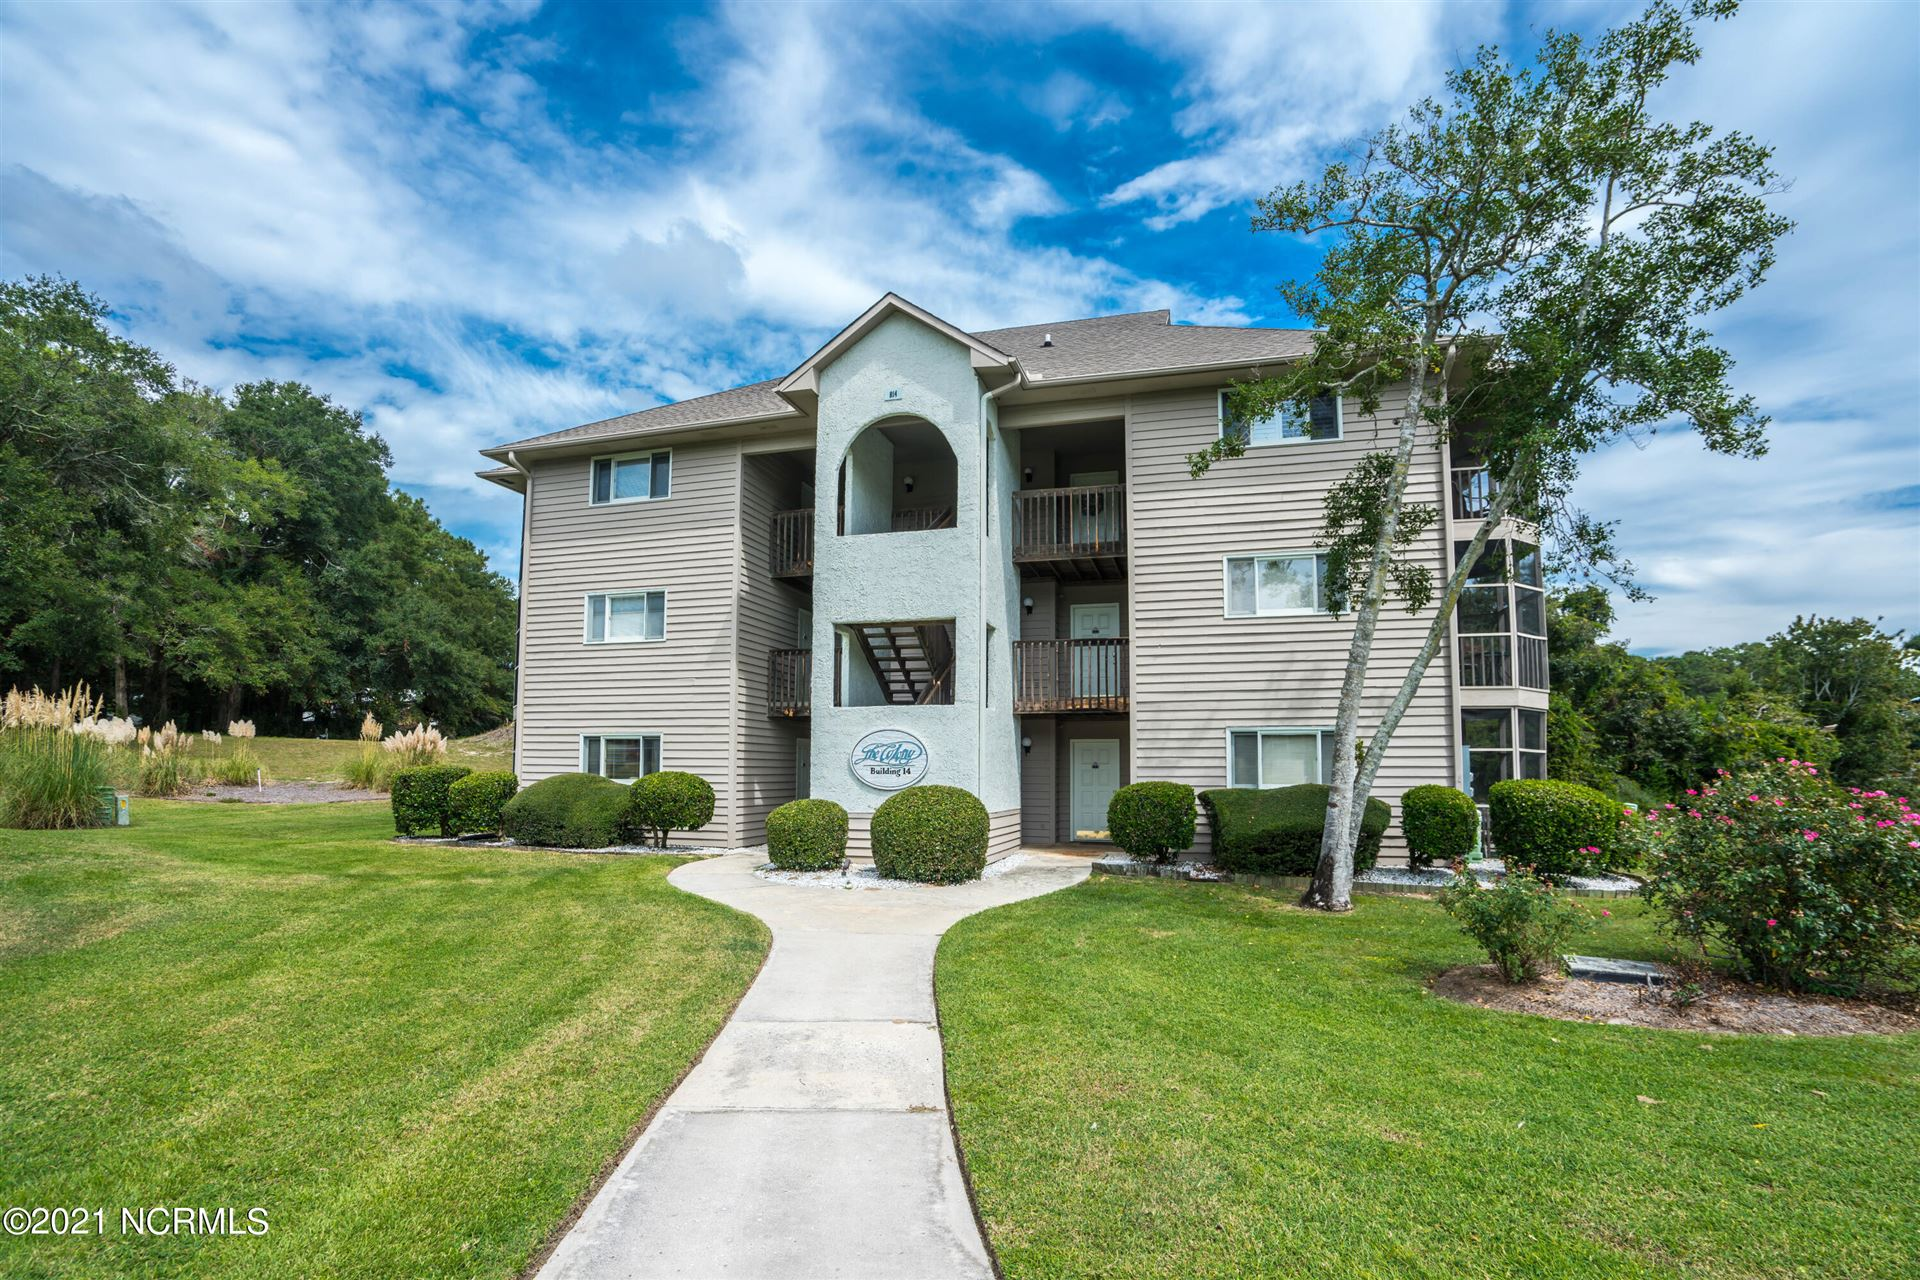 Photo of 814 Colony Place # A, Sunset Beach, NC 28468 (MLS # 100291282)